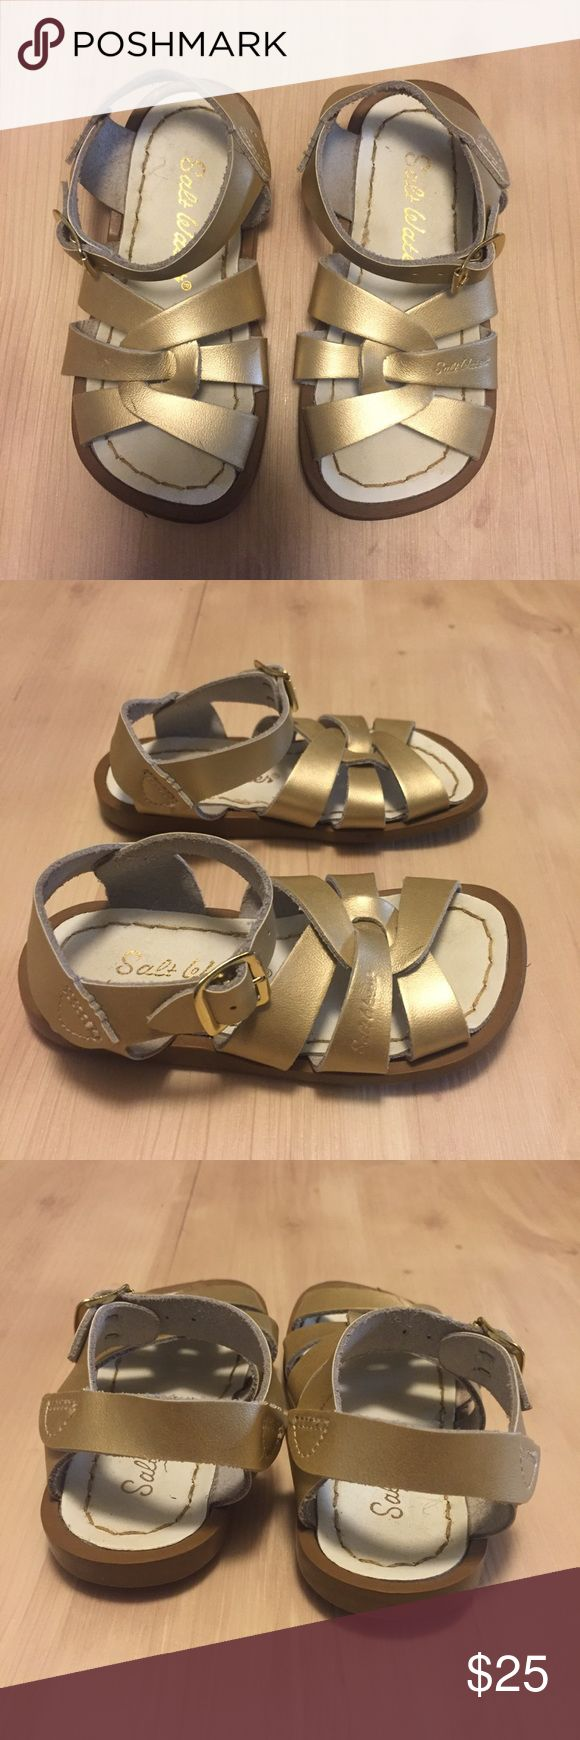 Saltwater Sandals Gold Toddler Sz 7 Saltwater Sandals Toddler Sz 7 Gold worn once selling at Nordstrom for $39 and it seems they never go on sale . My daughter has had 3 pairs of these in different colors through out her 19 years 💕and of course I wanted them as a little girl 😊maybe I had them ...let's see if my Mom reads this and comments 😉great pair of sandals buy them now off season , for Vacay or maybe you are lucky enough to live in a warmer climate  in the winter . Salt Water Sandals…